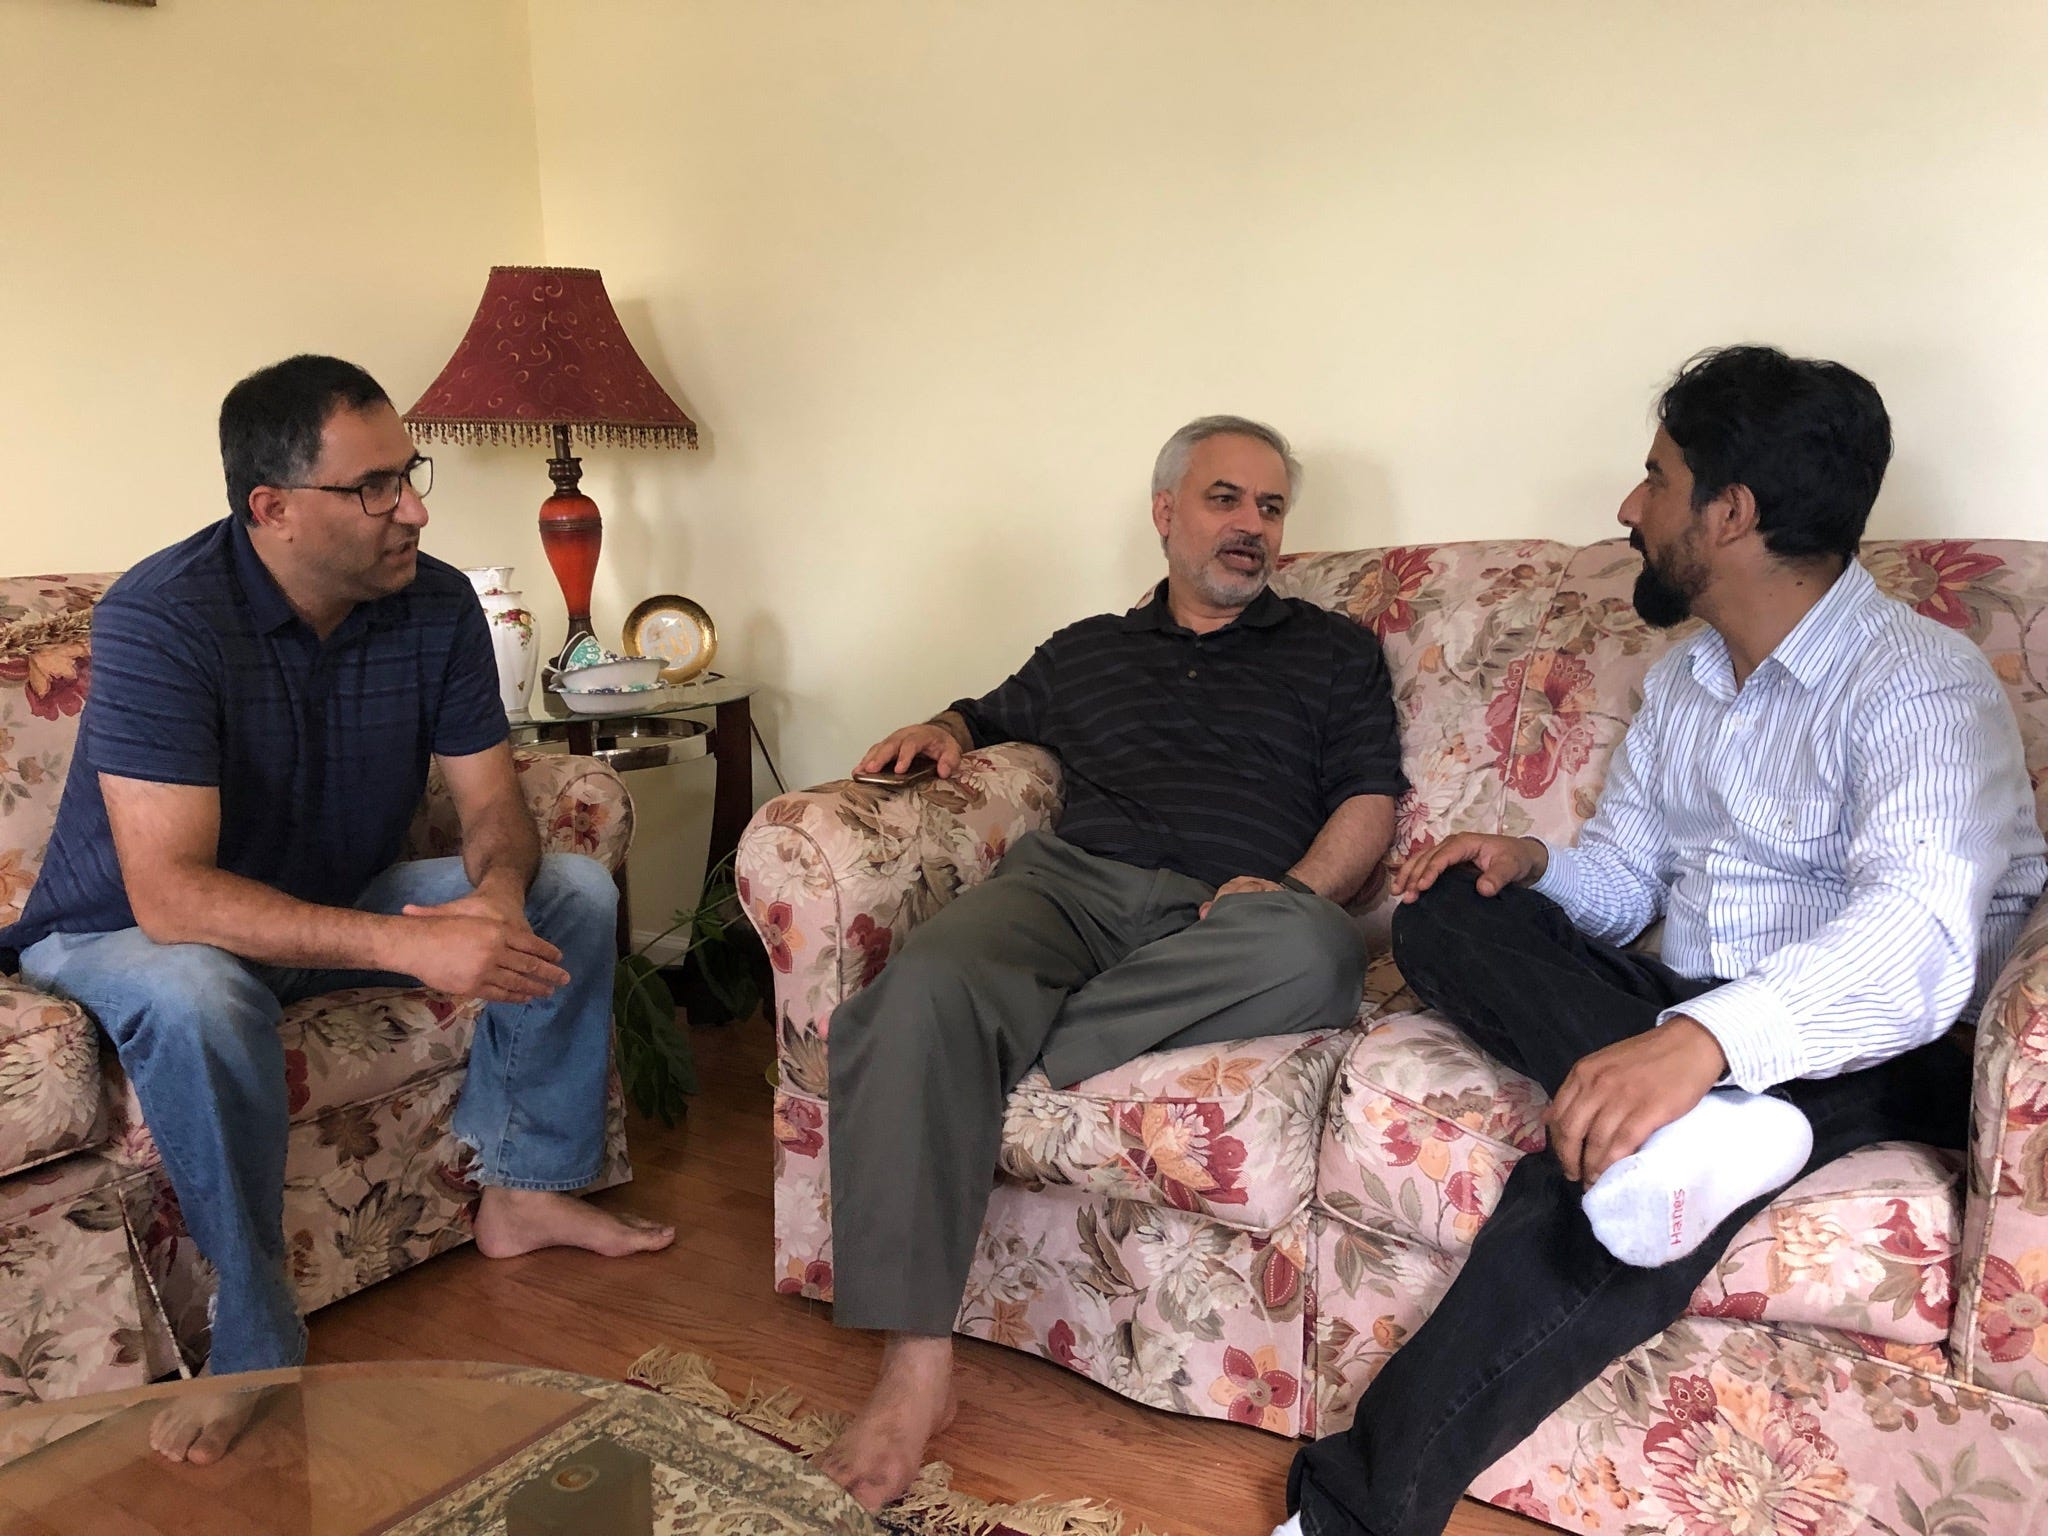 Tahir Qazi (middle) chats with friends, Arif Jan (left) and Shuaib Nabi (right) during Ramadan 2019 in Cherry Hill, New Jersey.